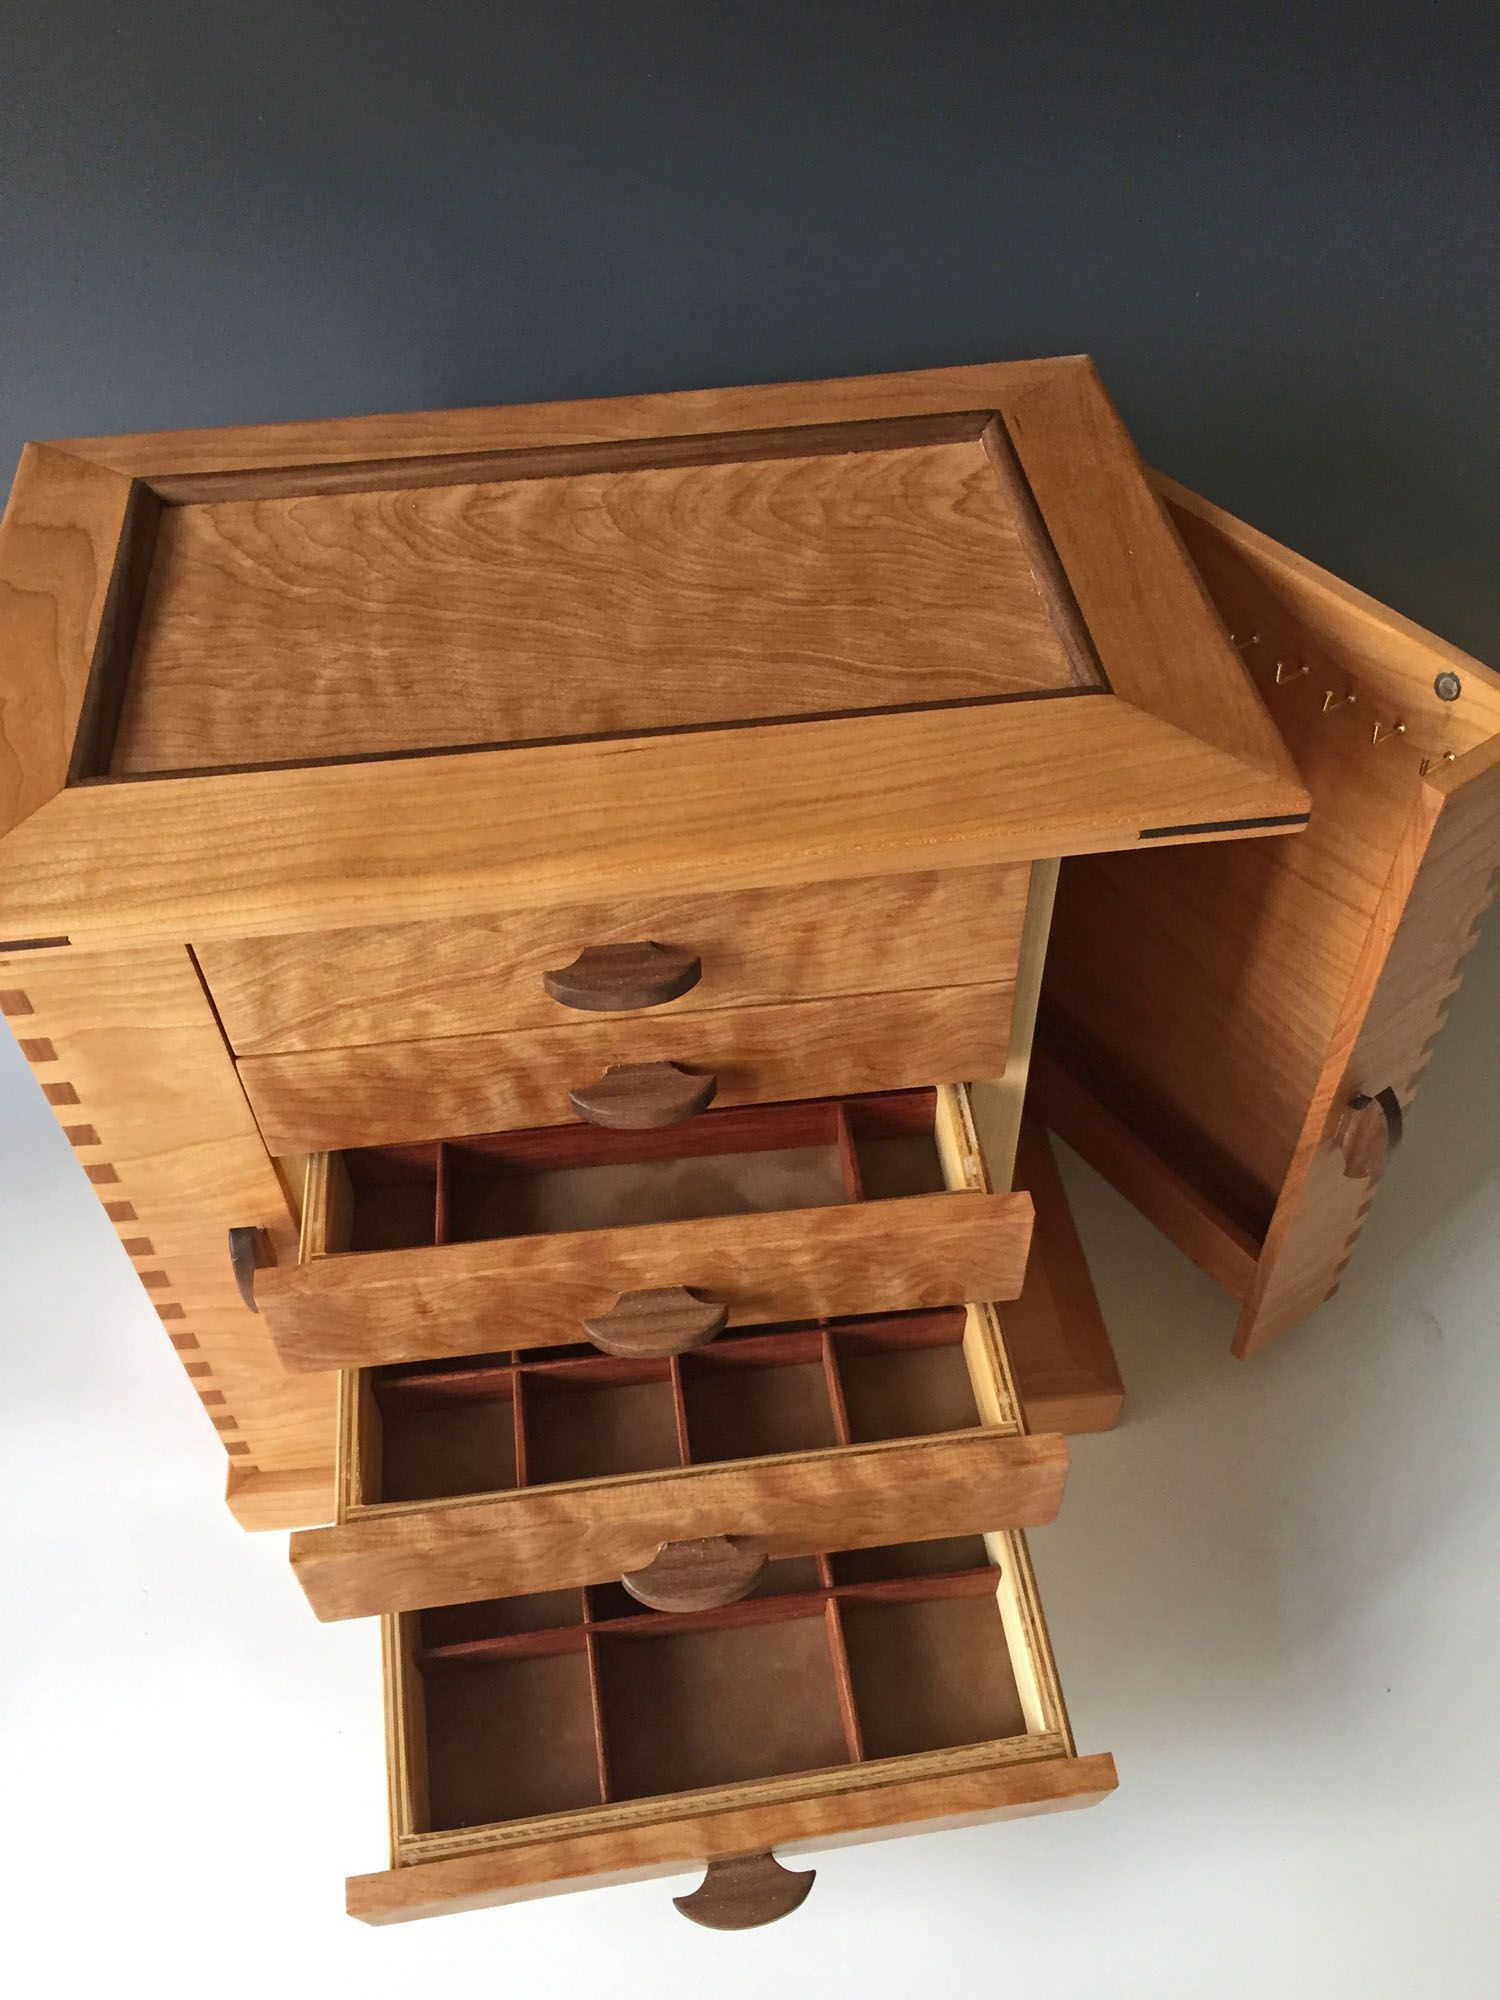 a handmade jewelry box with numerous drawers open to show